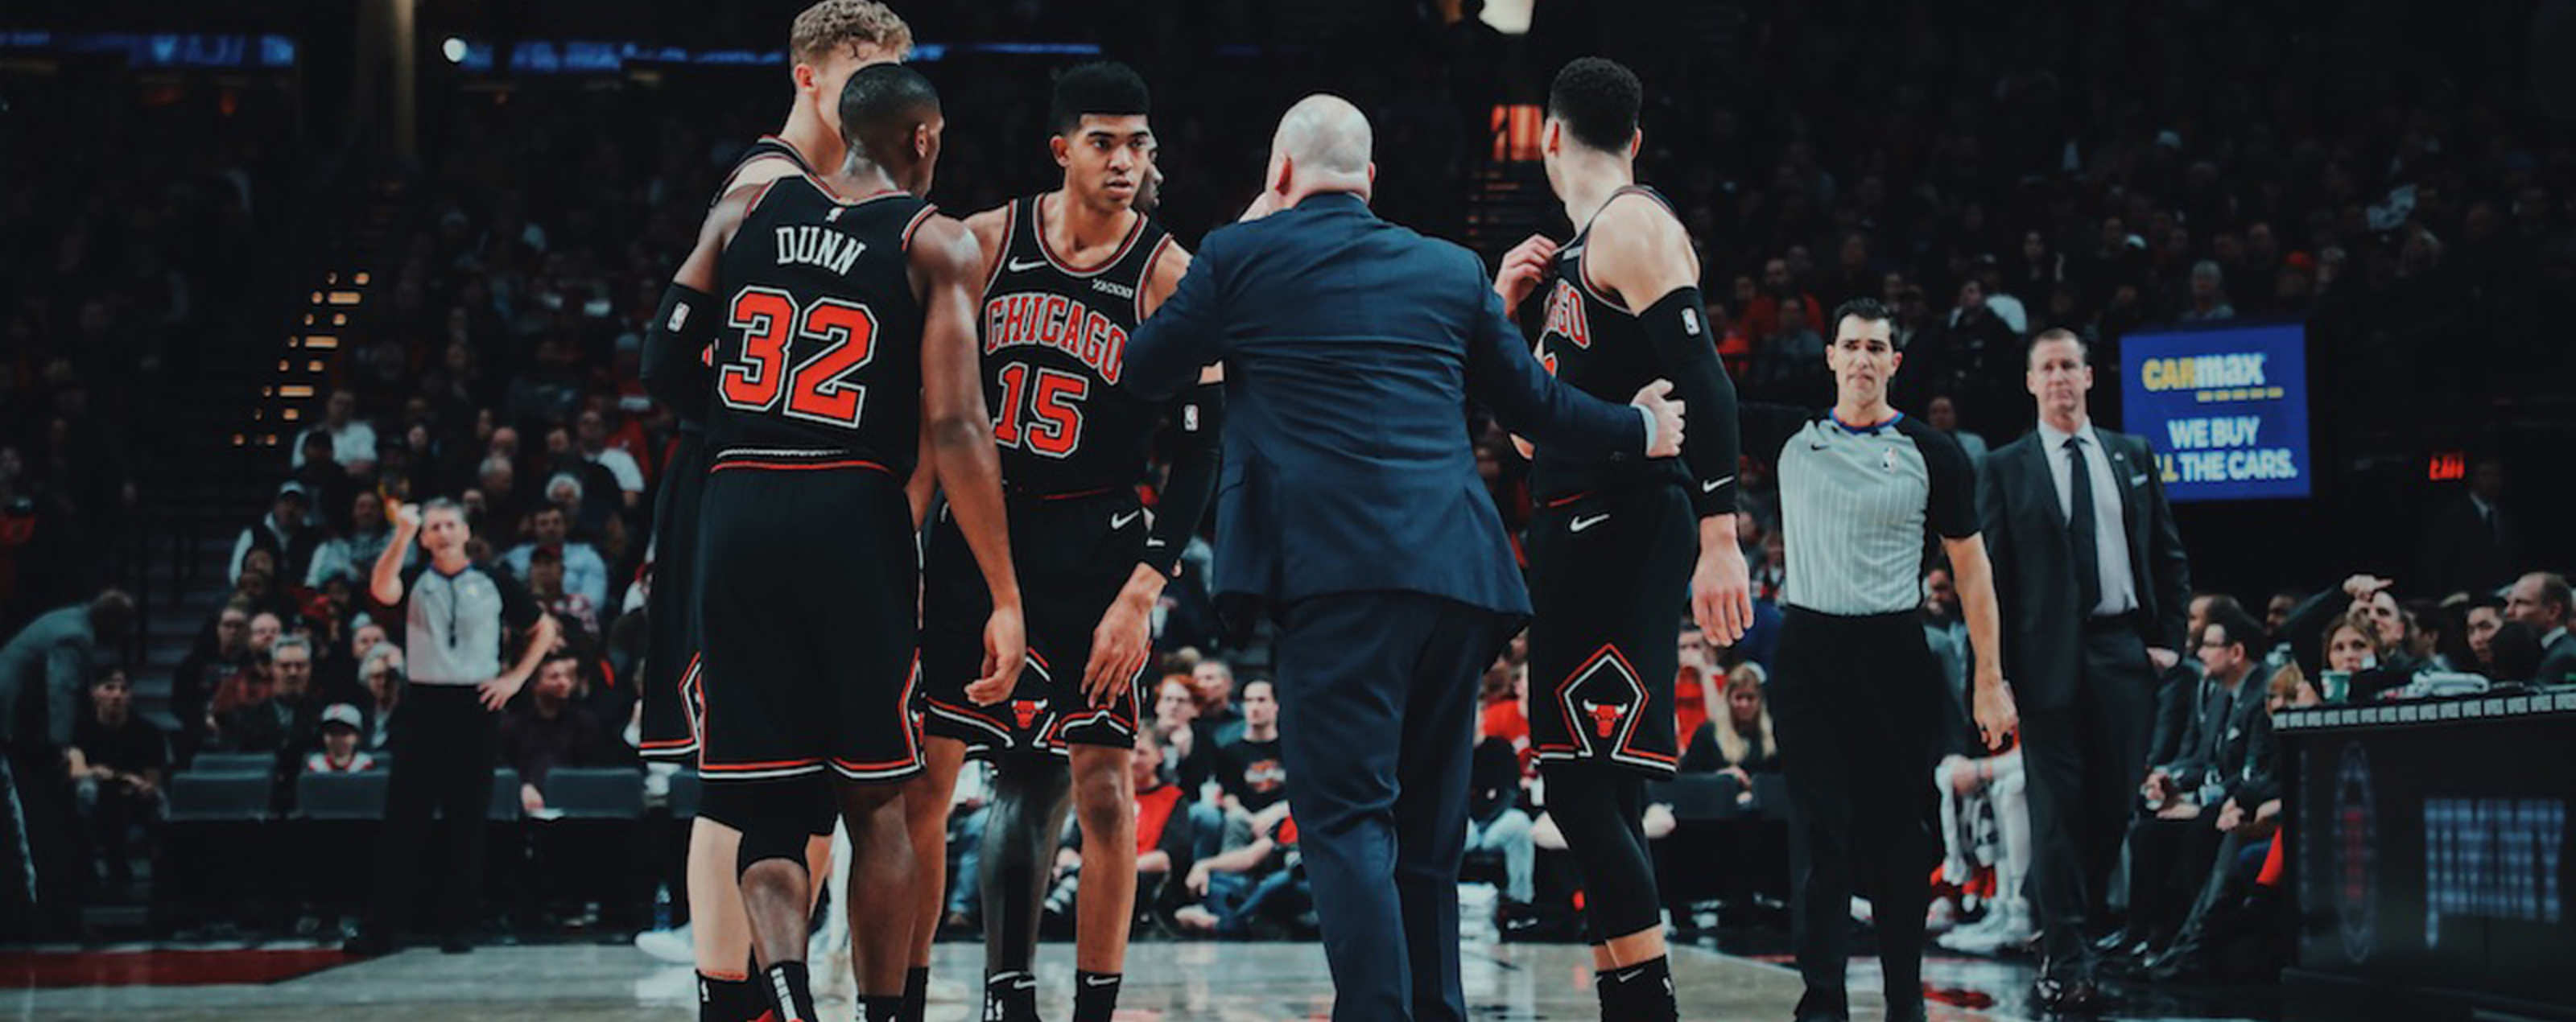 Chicago Bulls huddle during a timeout.